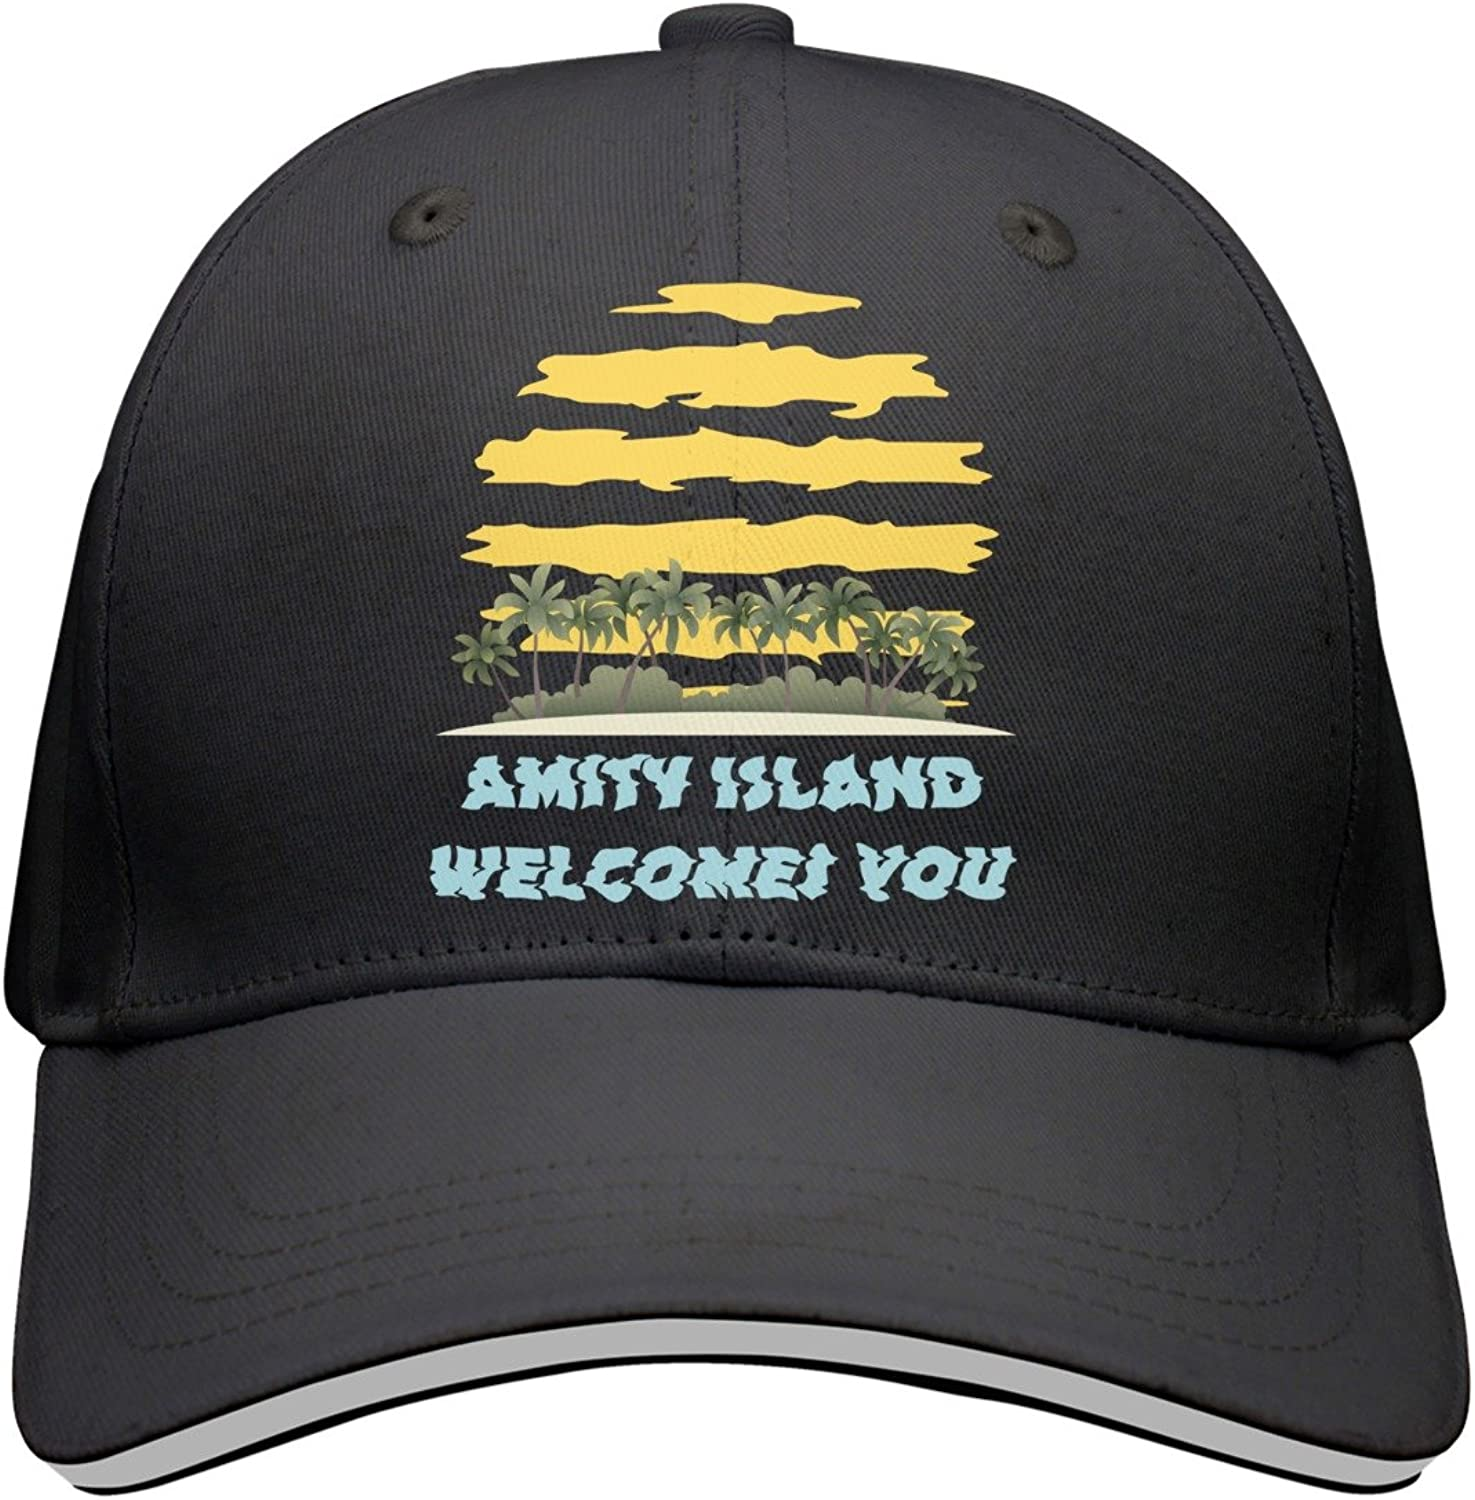 Kr.JAIEN Baseball Cap for Men and Women Amity Island Welcomes You Cool Peaked Cap for Boy and Girls